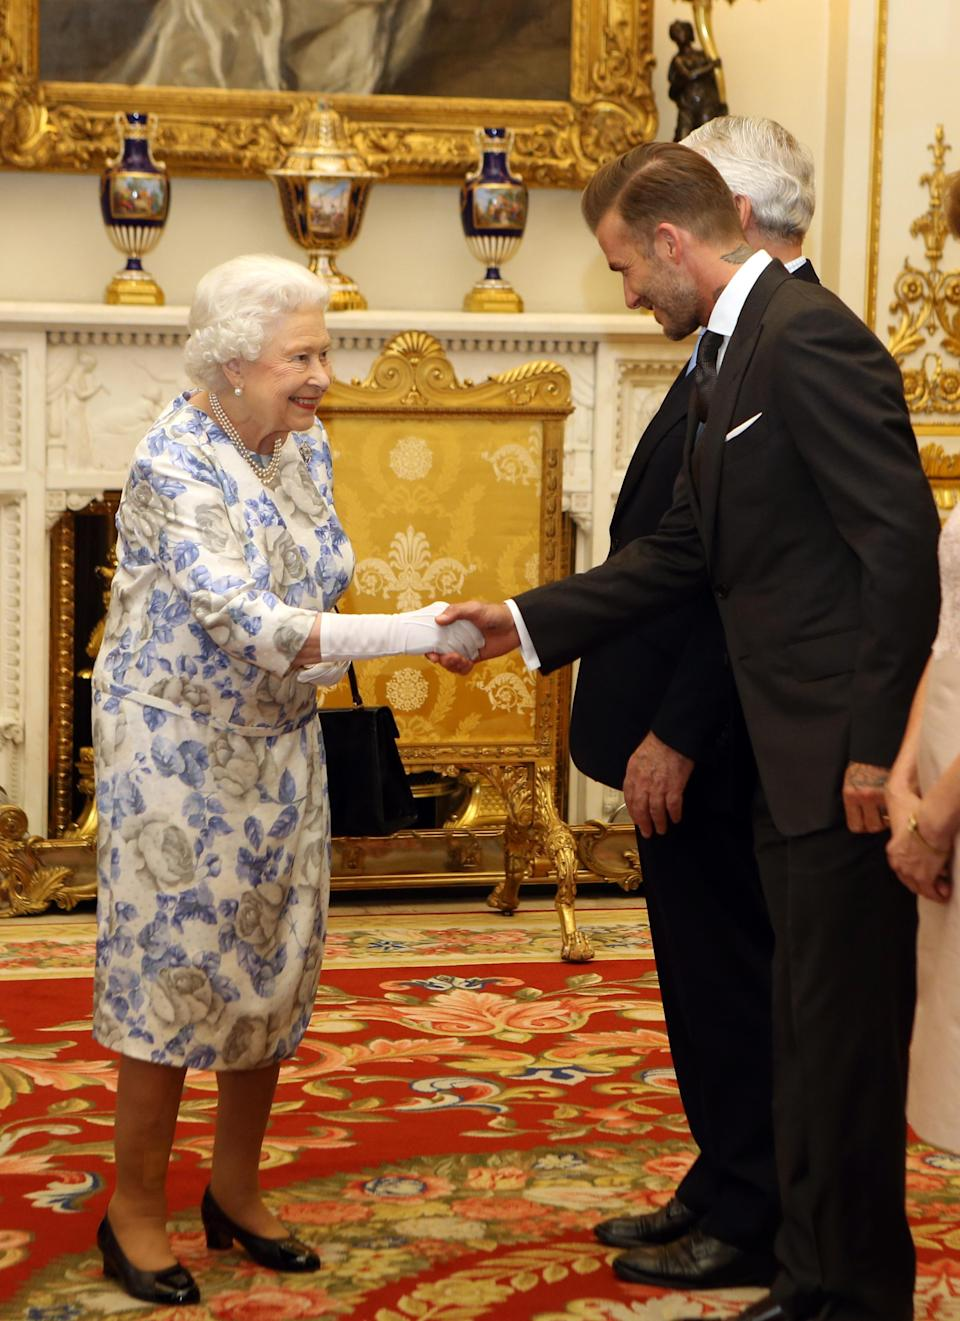 """<p>He may be one of the most famous people in the world but even David Beckham <a href=""""https://www.express.co.uk/celebrity-news/682898/David-Beckham-dapper-the-Queen-Buckingham-Palace-Young-Leaders-Awards"""" rel=""""nofollow noopener"""" target=""""_blank"""" data-ylk=""""slk:had"""" class=""""link rapid-noclick-resp"""">had</a> """"goosebumps"""" when he met the Queen. But he certainly dressed to impress in a dapper suit which, by the looks of Her Majesty's grin, she definitely approved of. <em>[Photo: Getty]</em> </p>"""